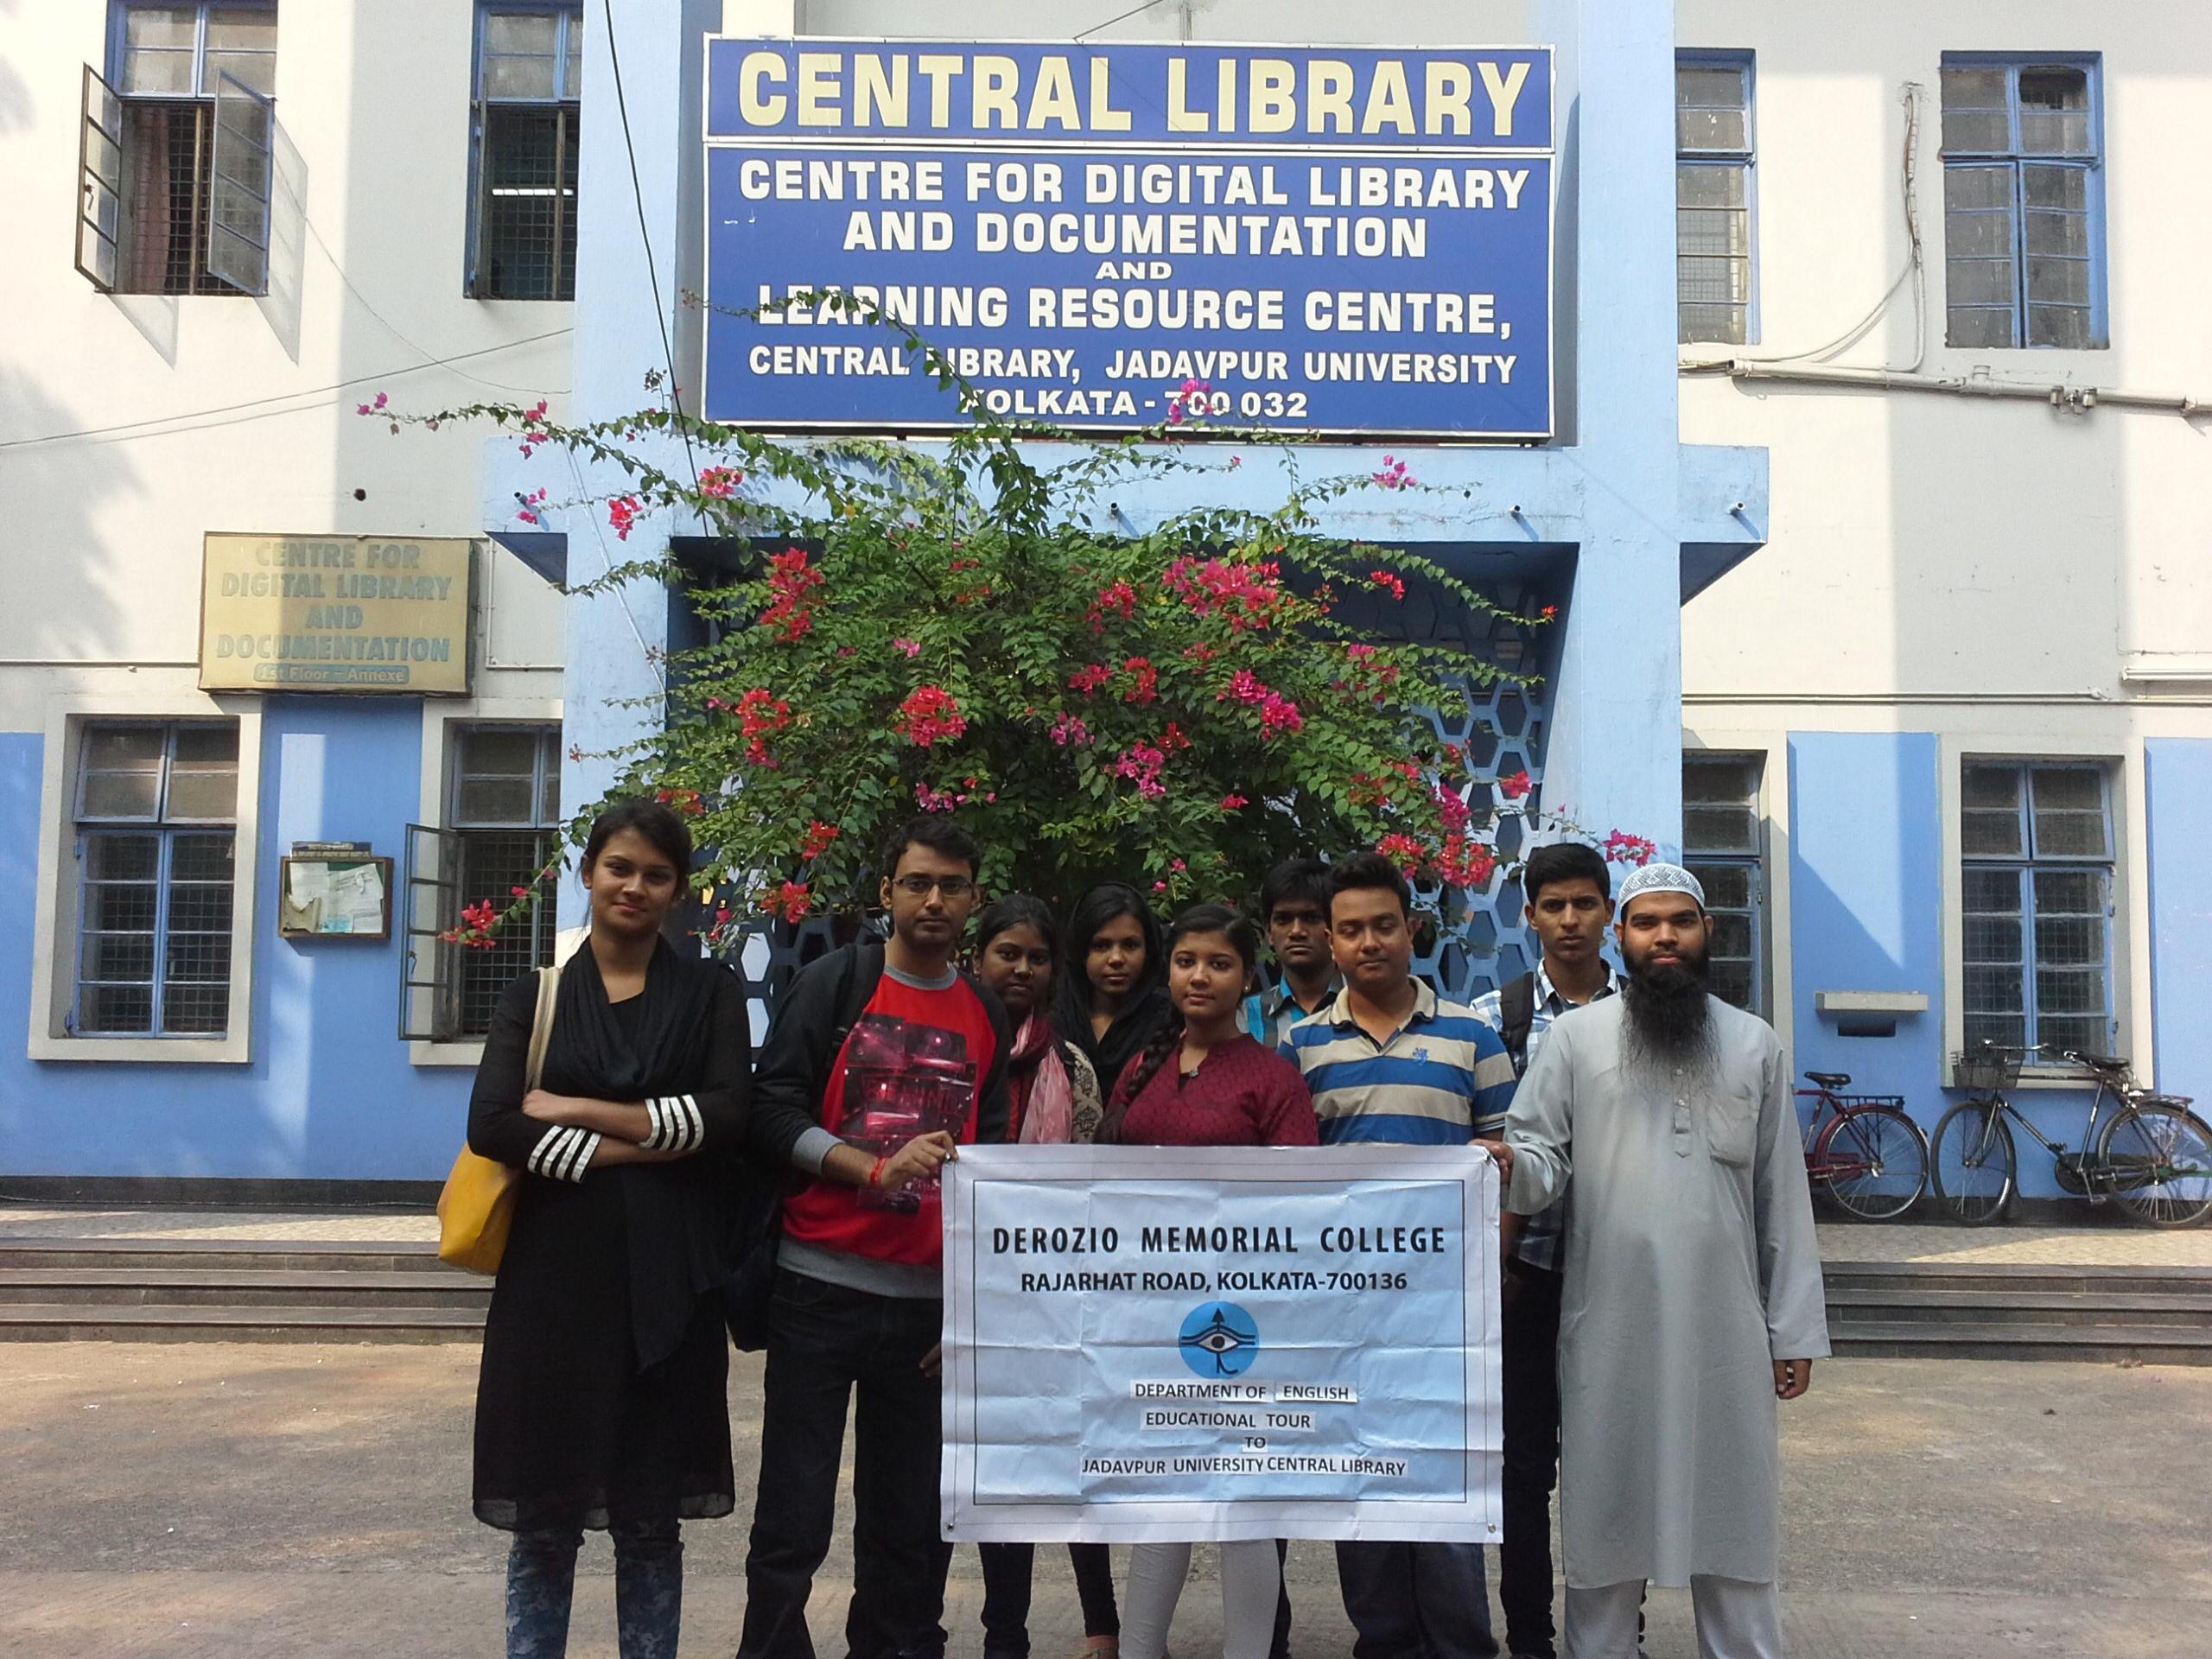 Educational Tour to Jadavpur University Central Library